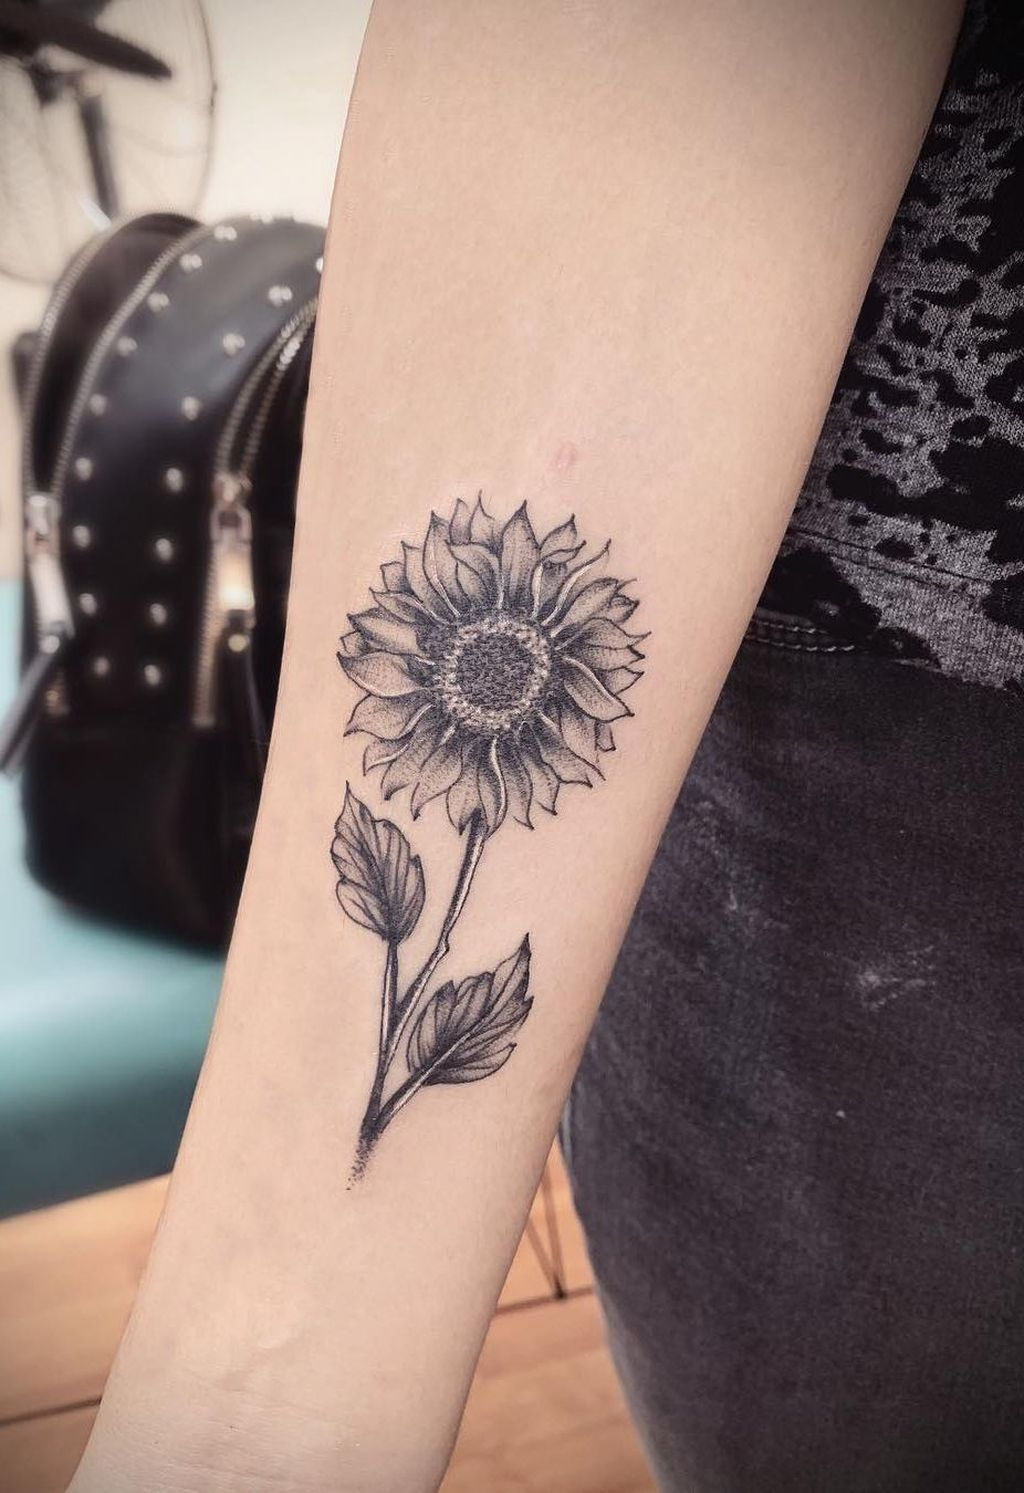 39 Impressive Black And White Sunflower Tattoo Ideas